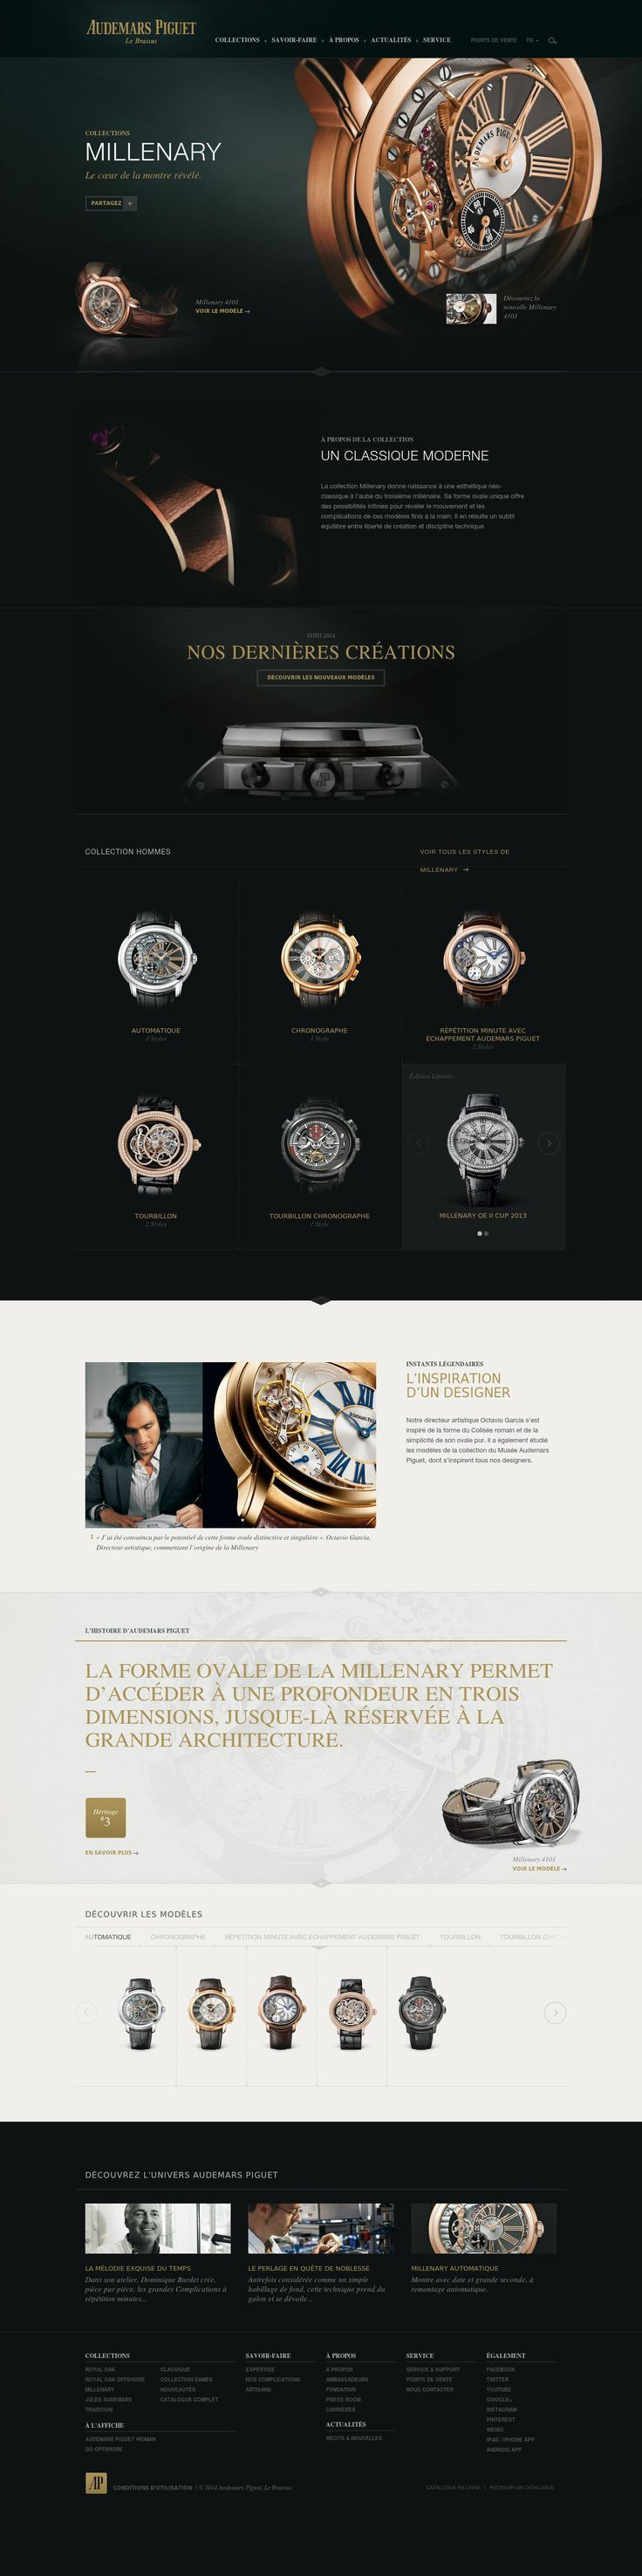 Audemars Piguet website // 상품을 강조한 검은색 배경의 웹디자인. 시계의 금속성 재질과 검은색이 조화로우면서 고급스러운 이미지를 만들어내는 것 같다. 역시 금속엔 검정 - men silver watch, nice mens watches, invicta watches *sponsored https://www.pinterest.com/watches_watch/ https://www.pinterest.com/explore/watches/ https://www.pinterest.com/watches_watch/mens-watches/ https://www.rolex.com/